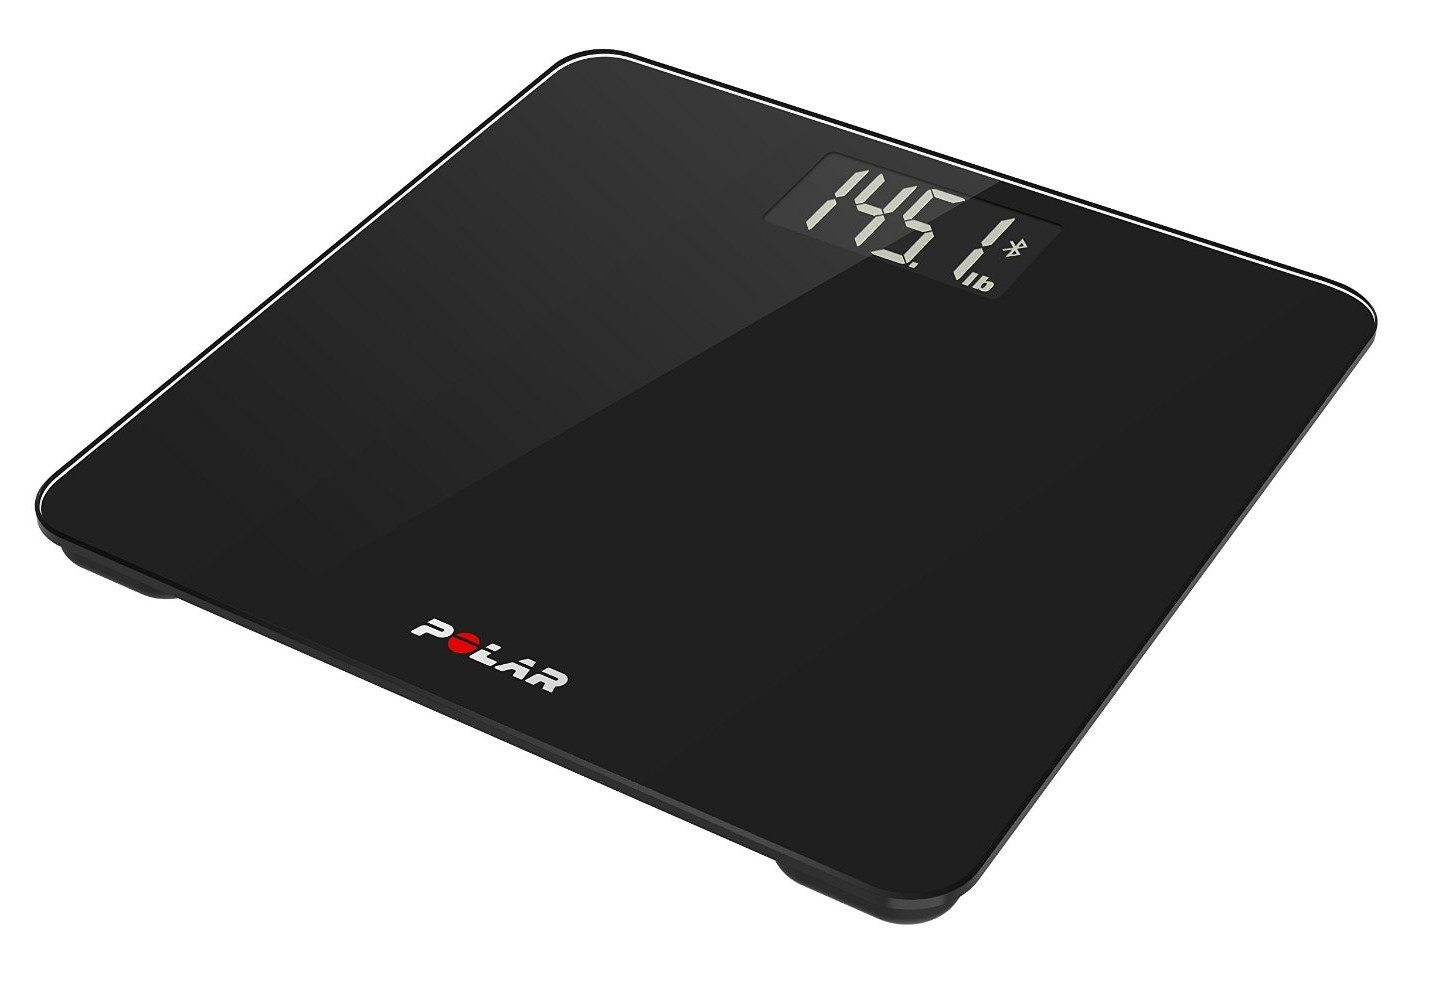 polar launches its own smart scale 3 - Review: Polar Balance scale